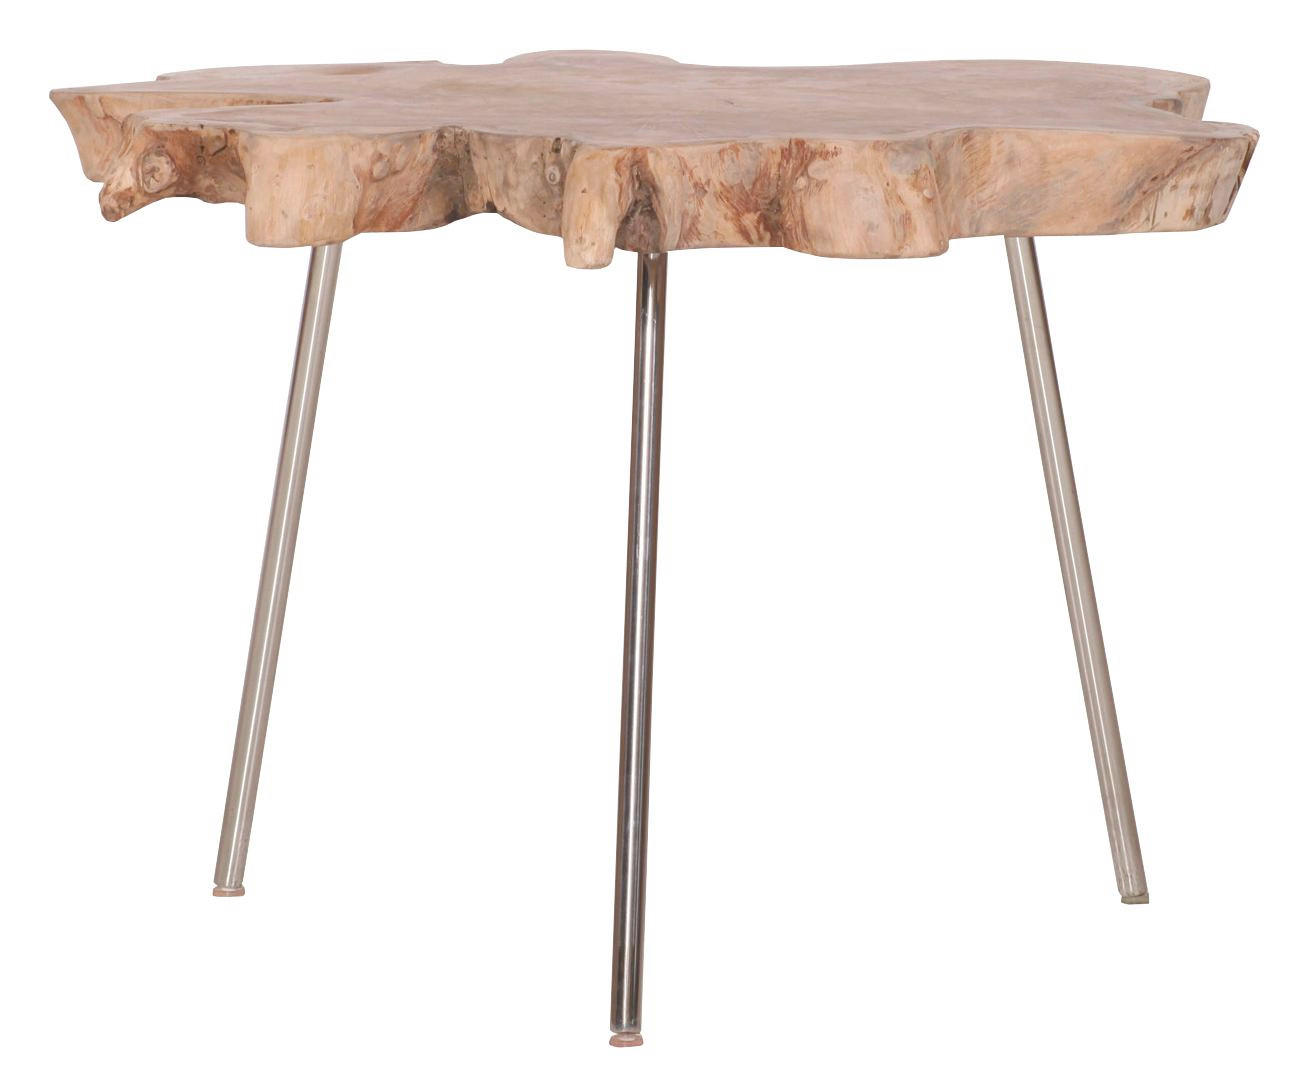 COUCHTISCH Teakholz - LIFESTYLE, Holz/Metall (60-75/50cm)